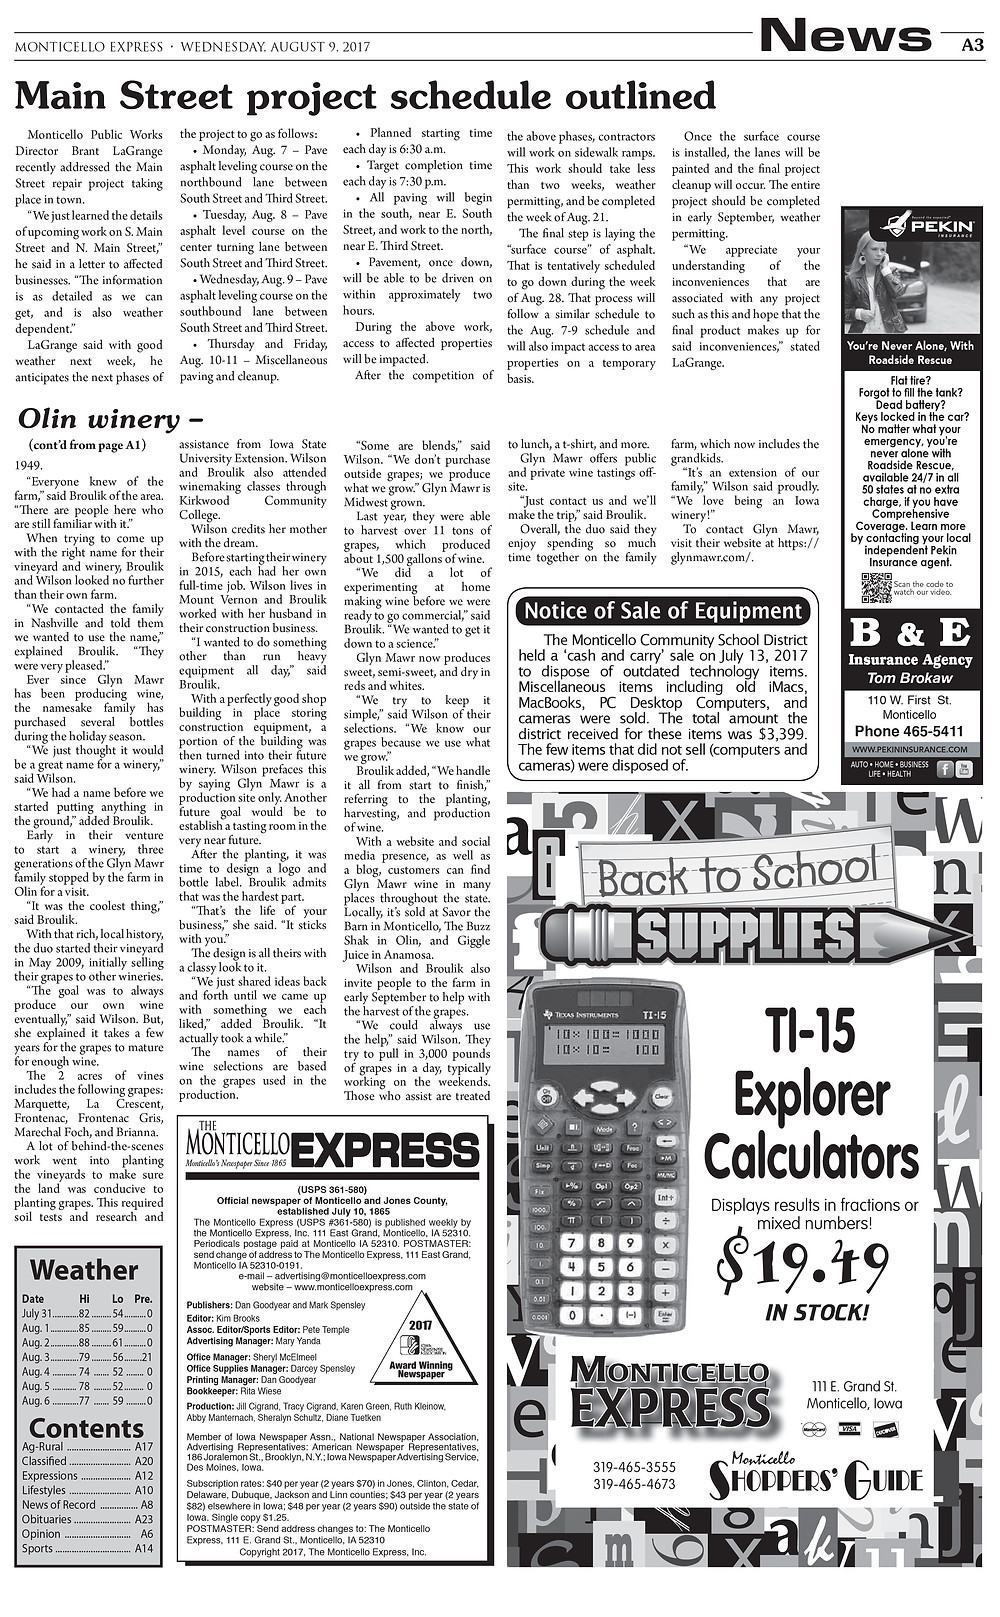 Monticello Express article page 2 jpg